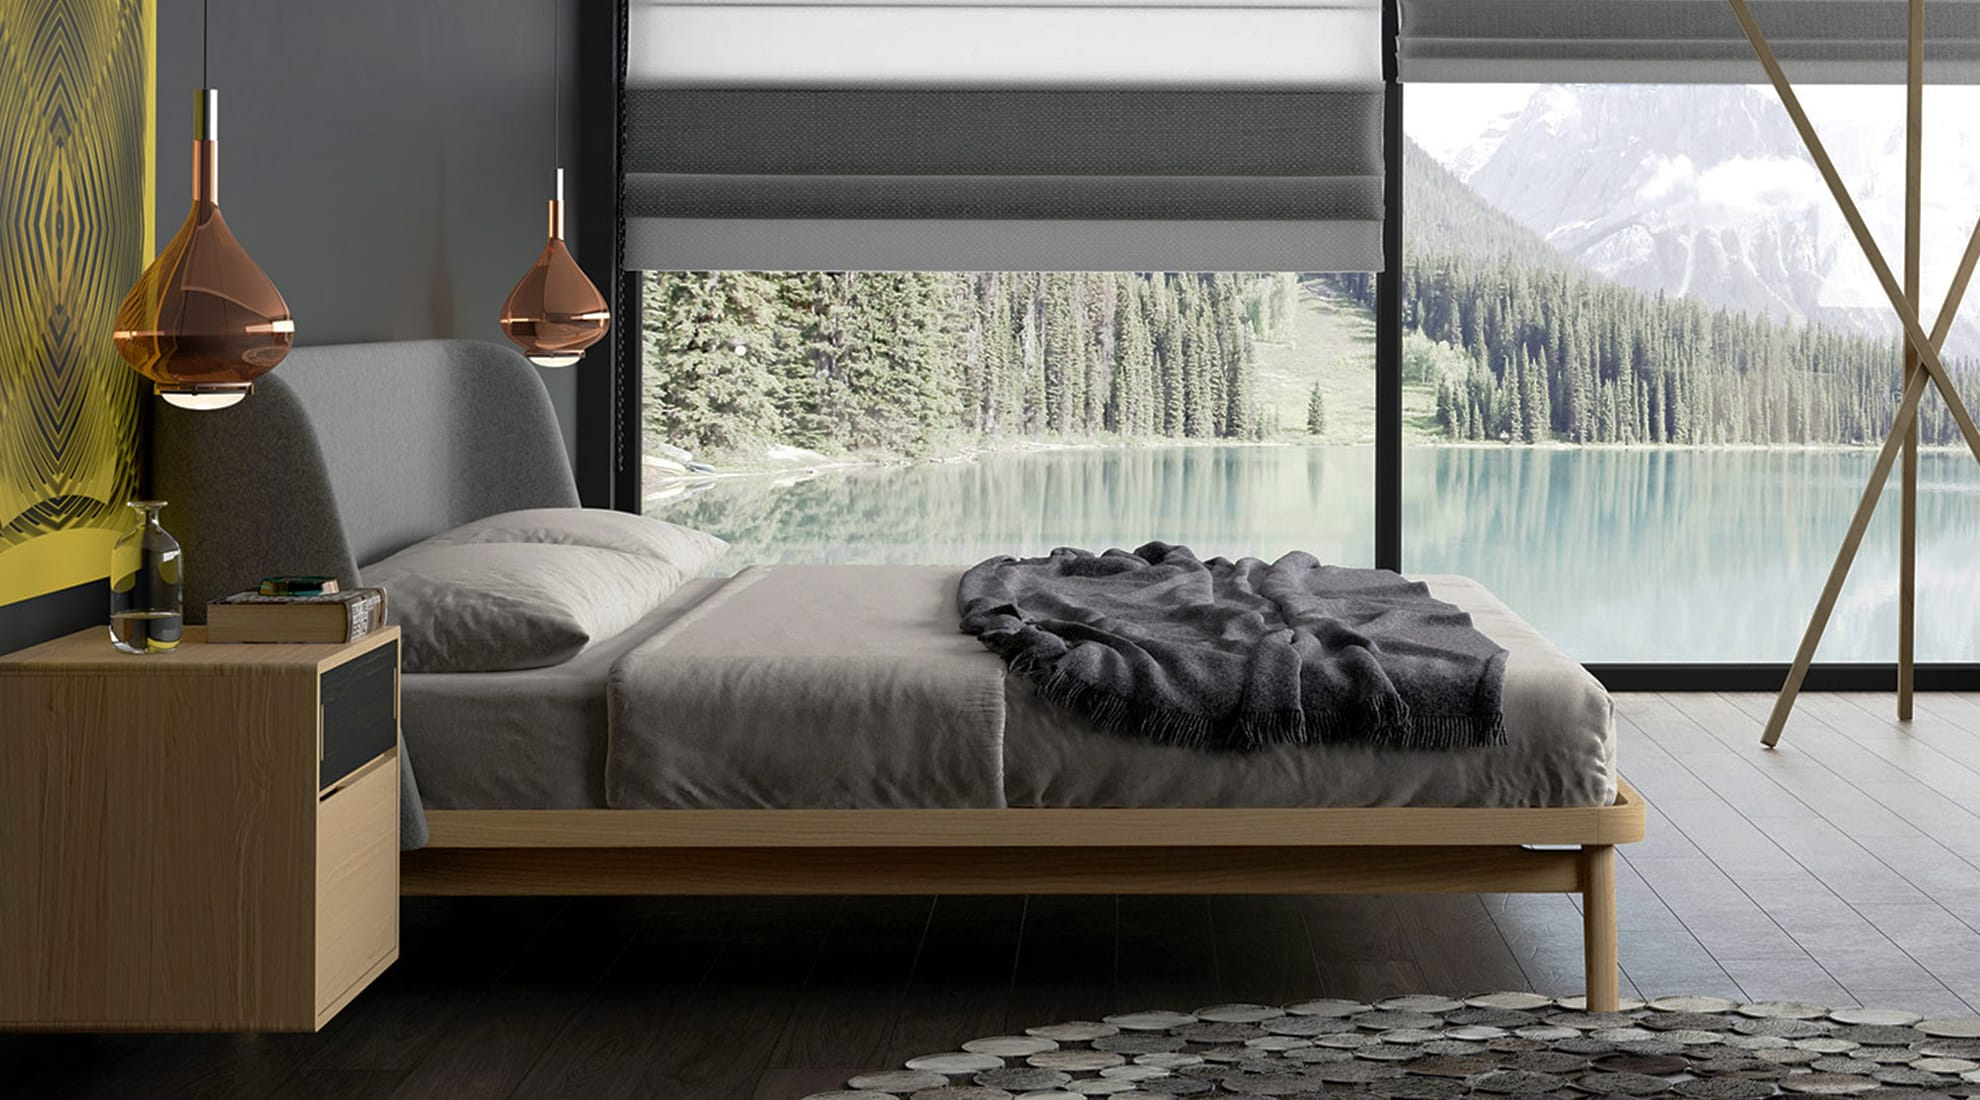 Haru Bed by Modloft and Sky Fall LED Pendant by Studio Italia Design